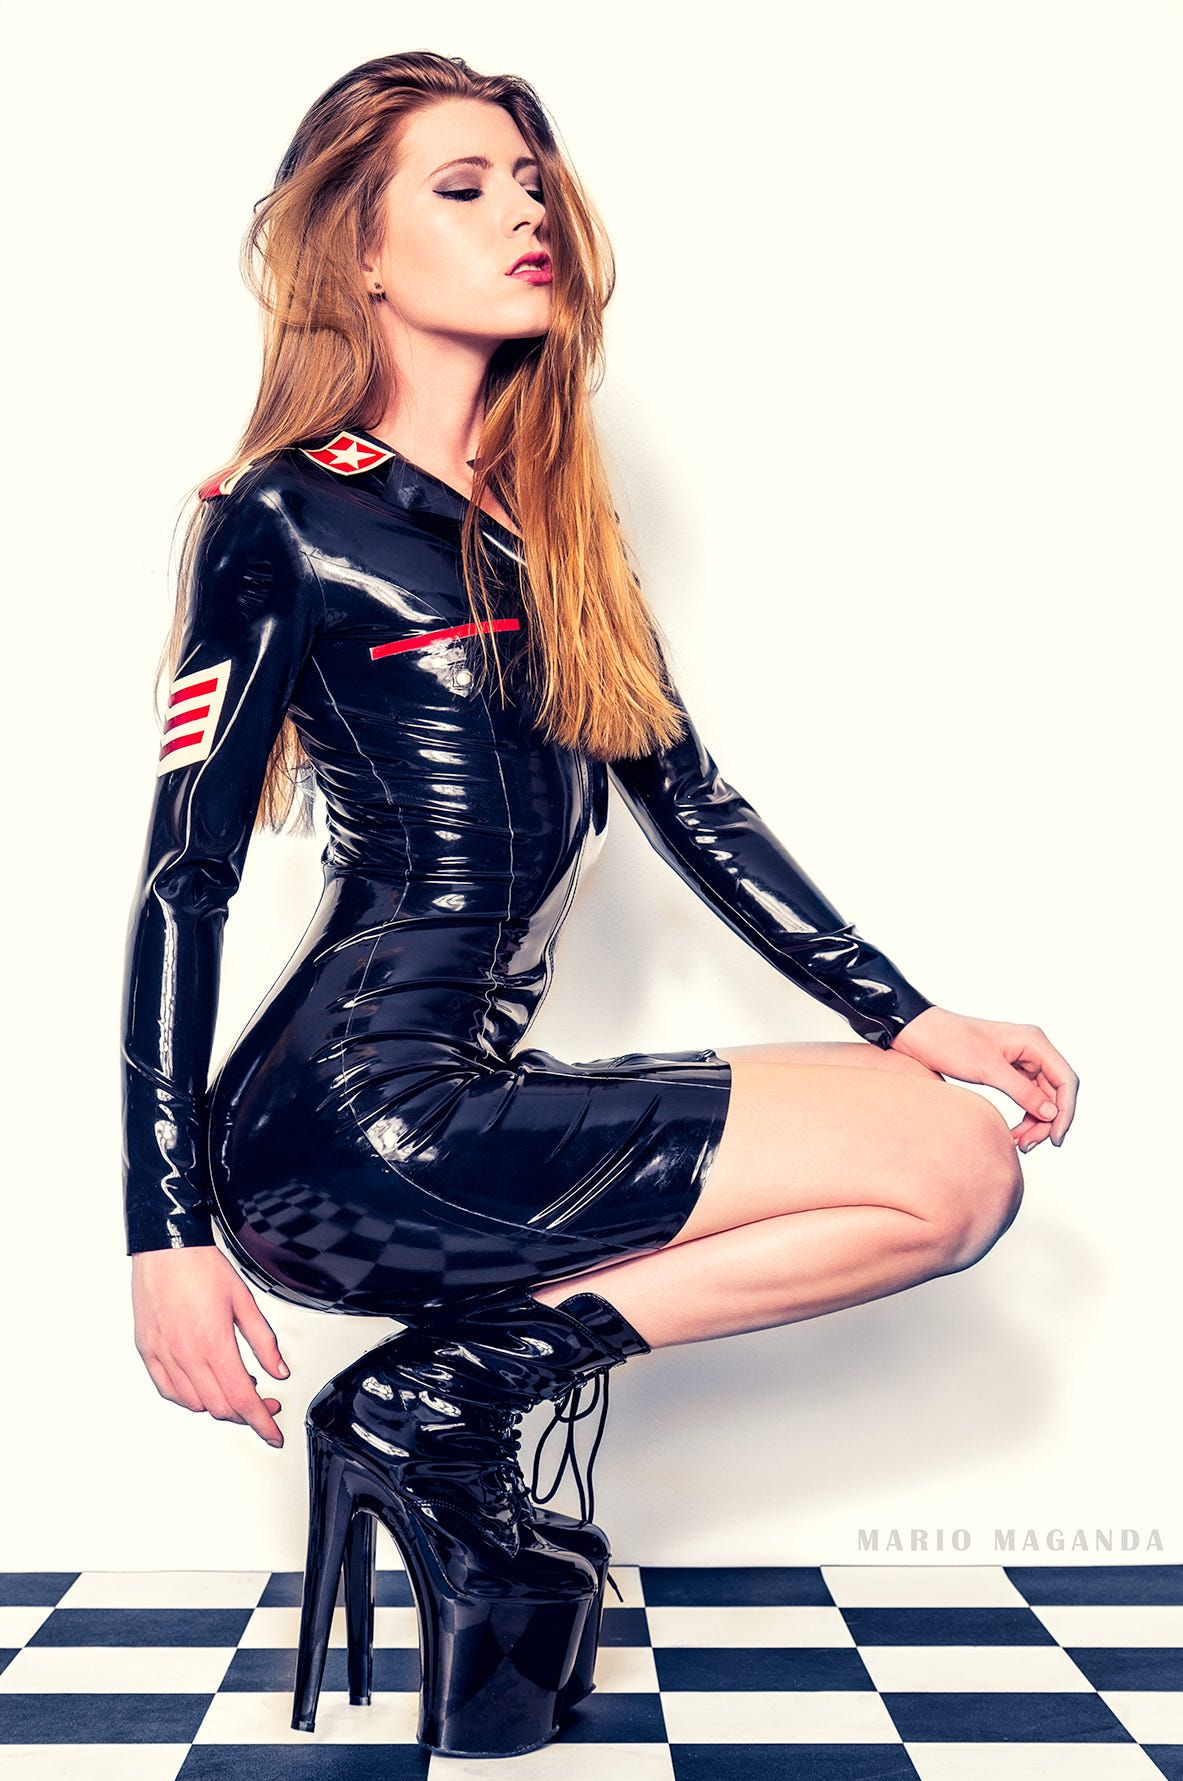 Pin on ☢ Latex ️ Leather ☢